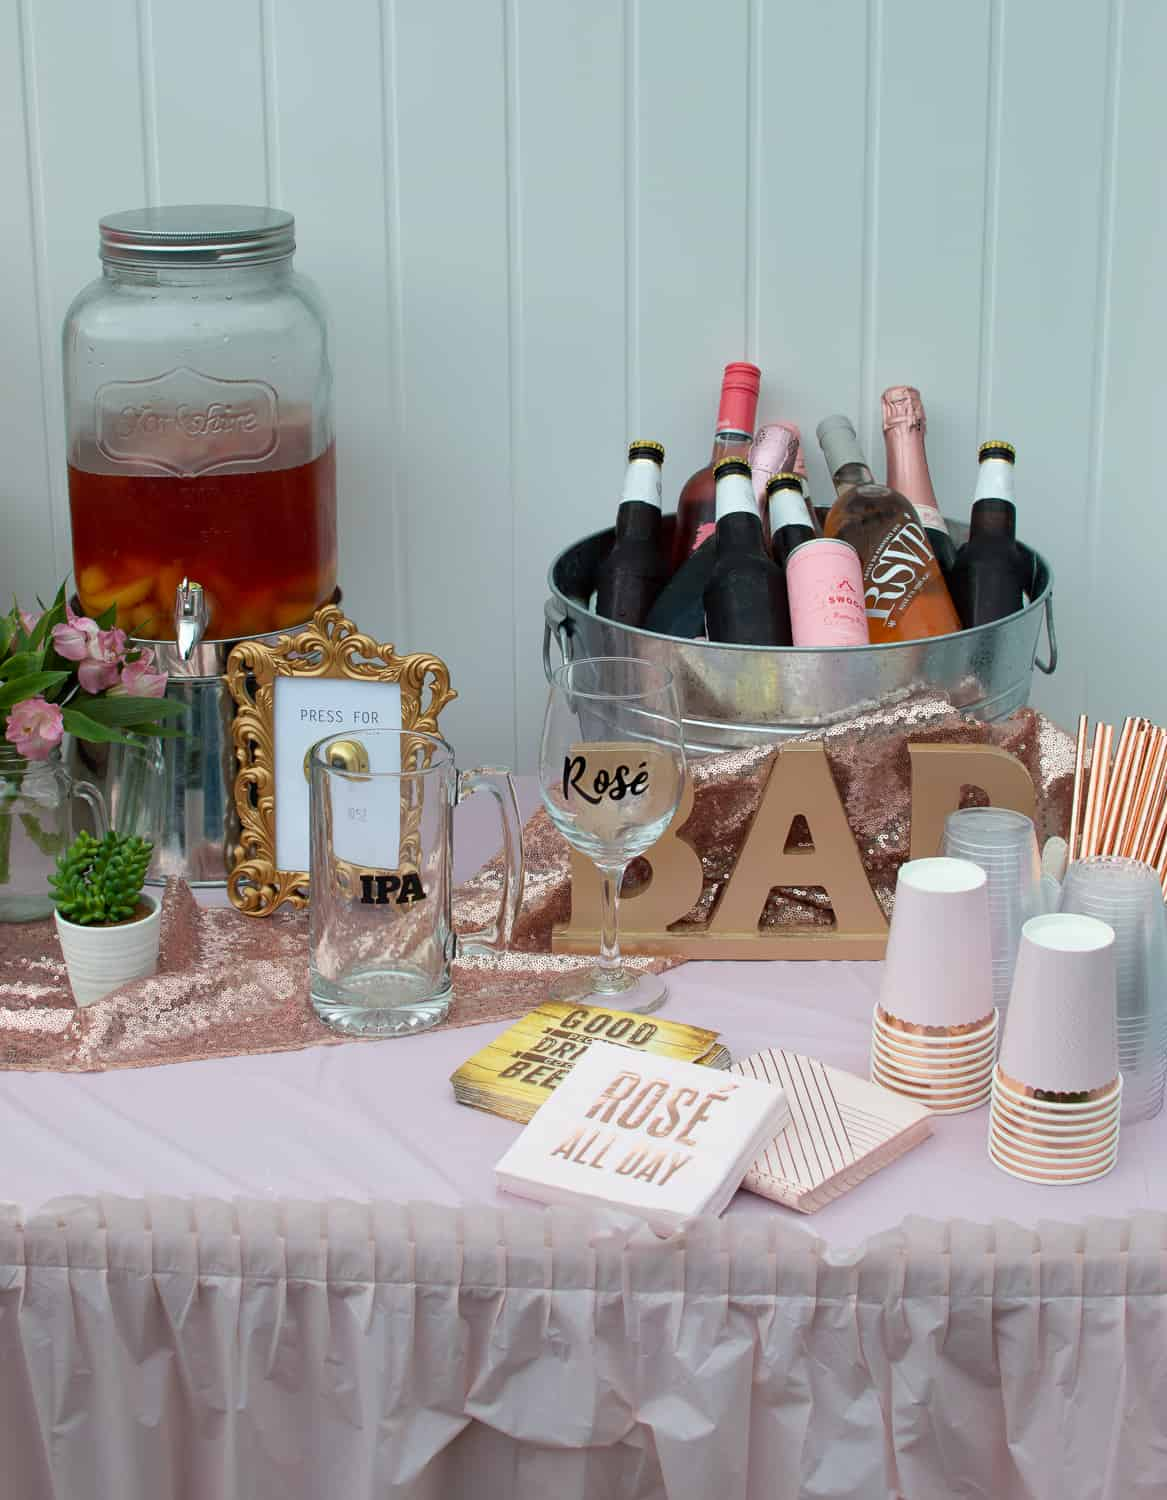 Rosé and IPA Wedding Shower Drinks Table